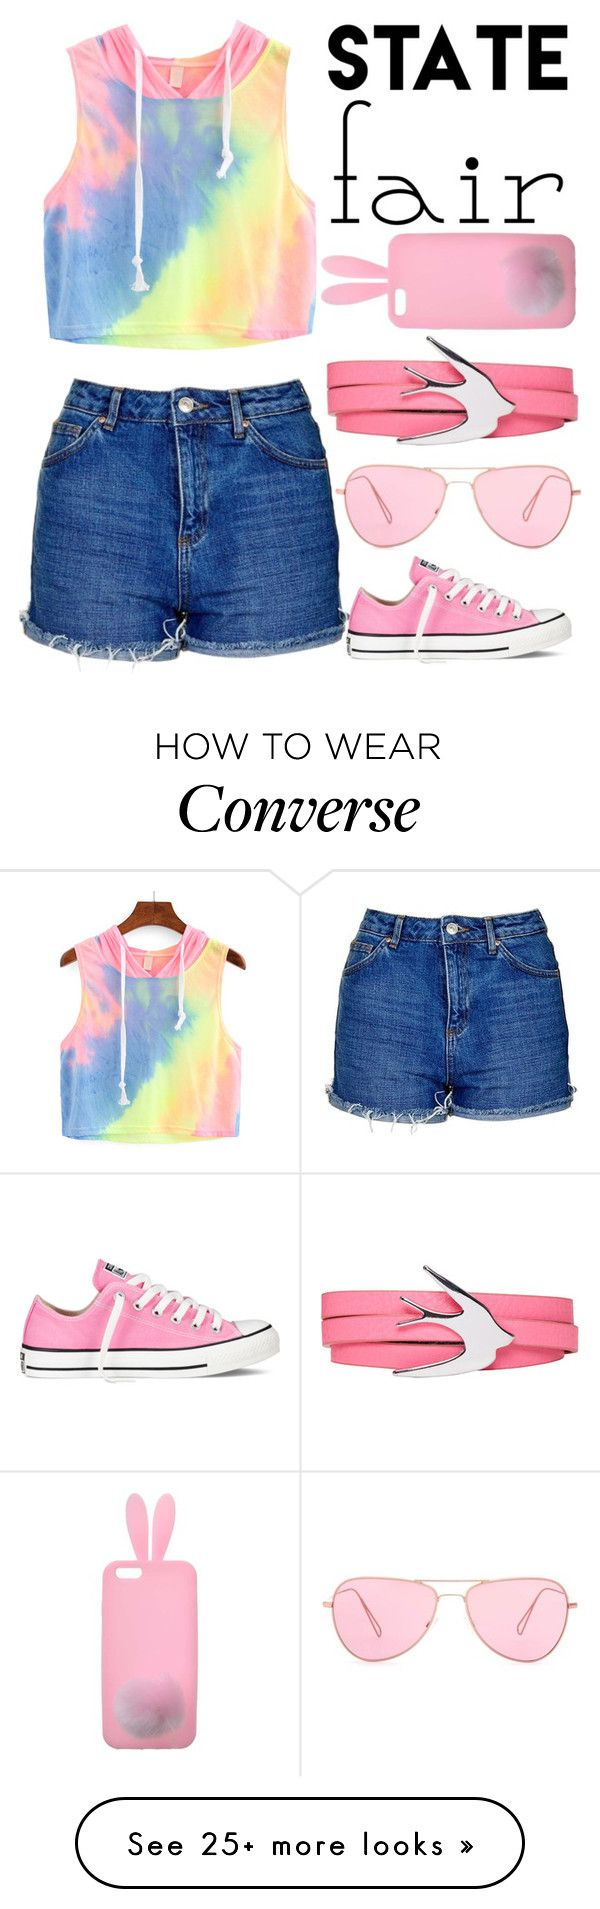 """State Fair"" by gabrielledixon on Polyvore featuring Topshop, Converse, Miss Selfridge, McQ by Alexander McQueen, Isabel Marant, statefair and summerdate"